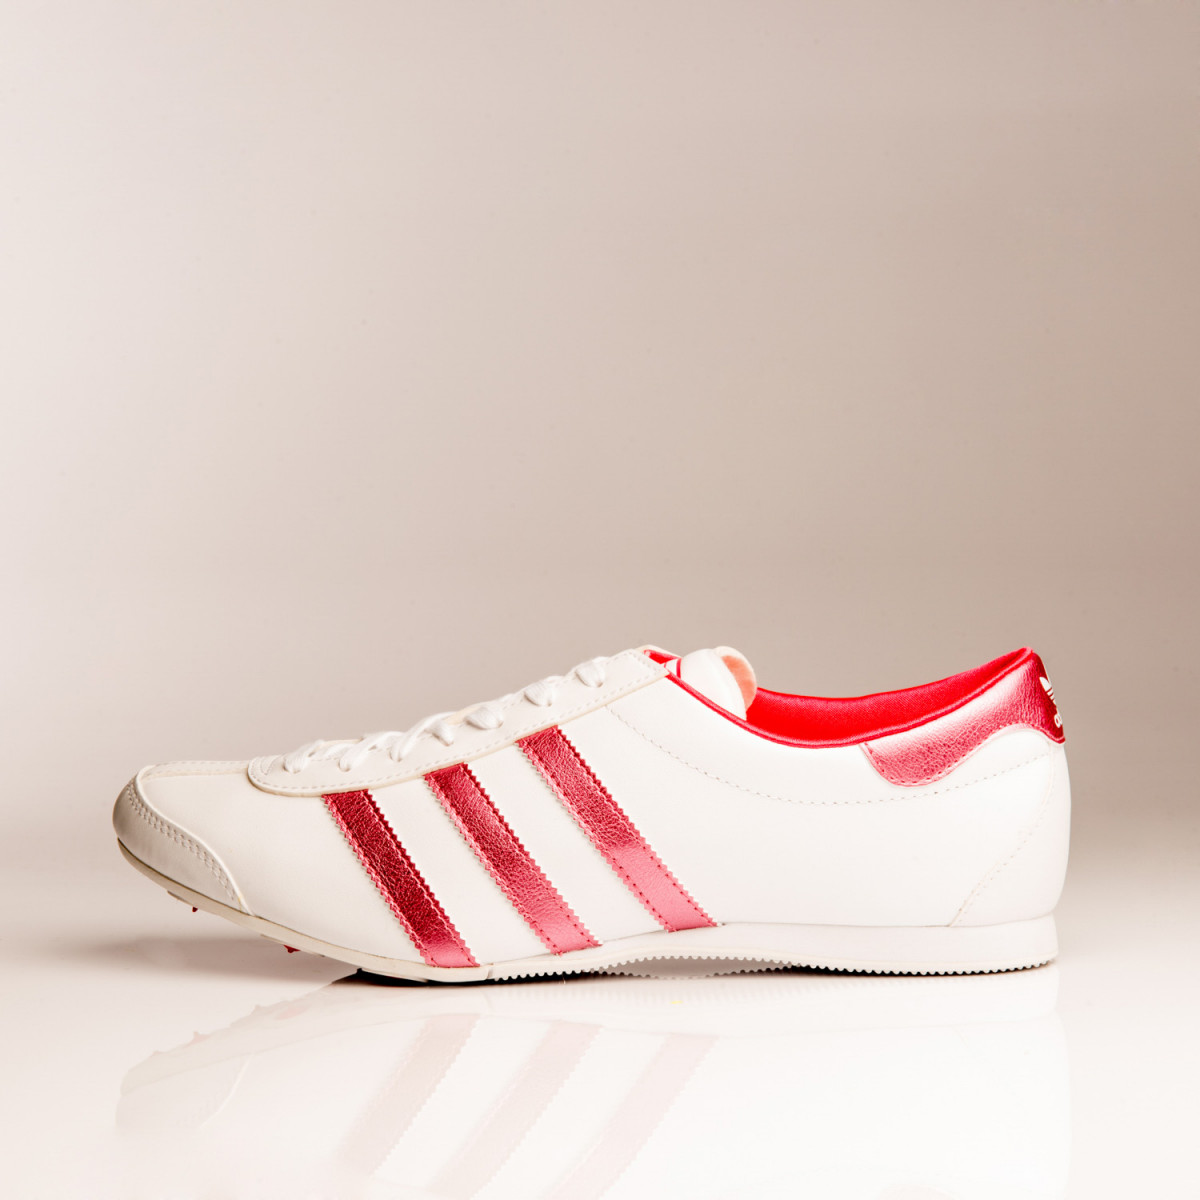 ZAPATILLAS ADIDAS ORIGINALS ADITRACK W